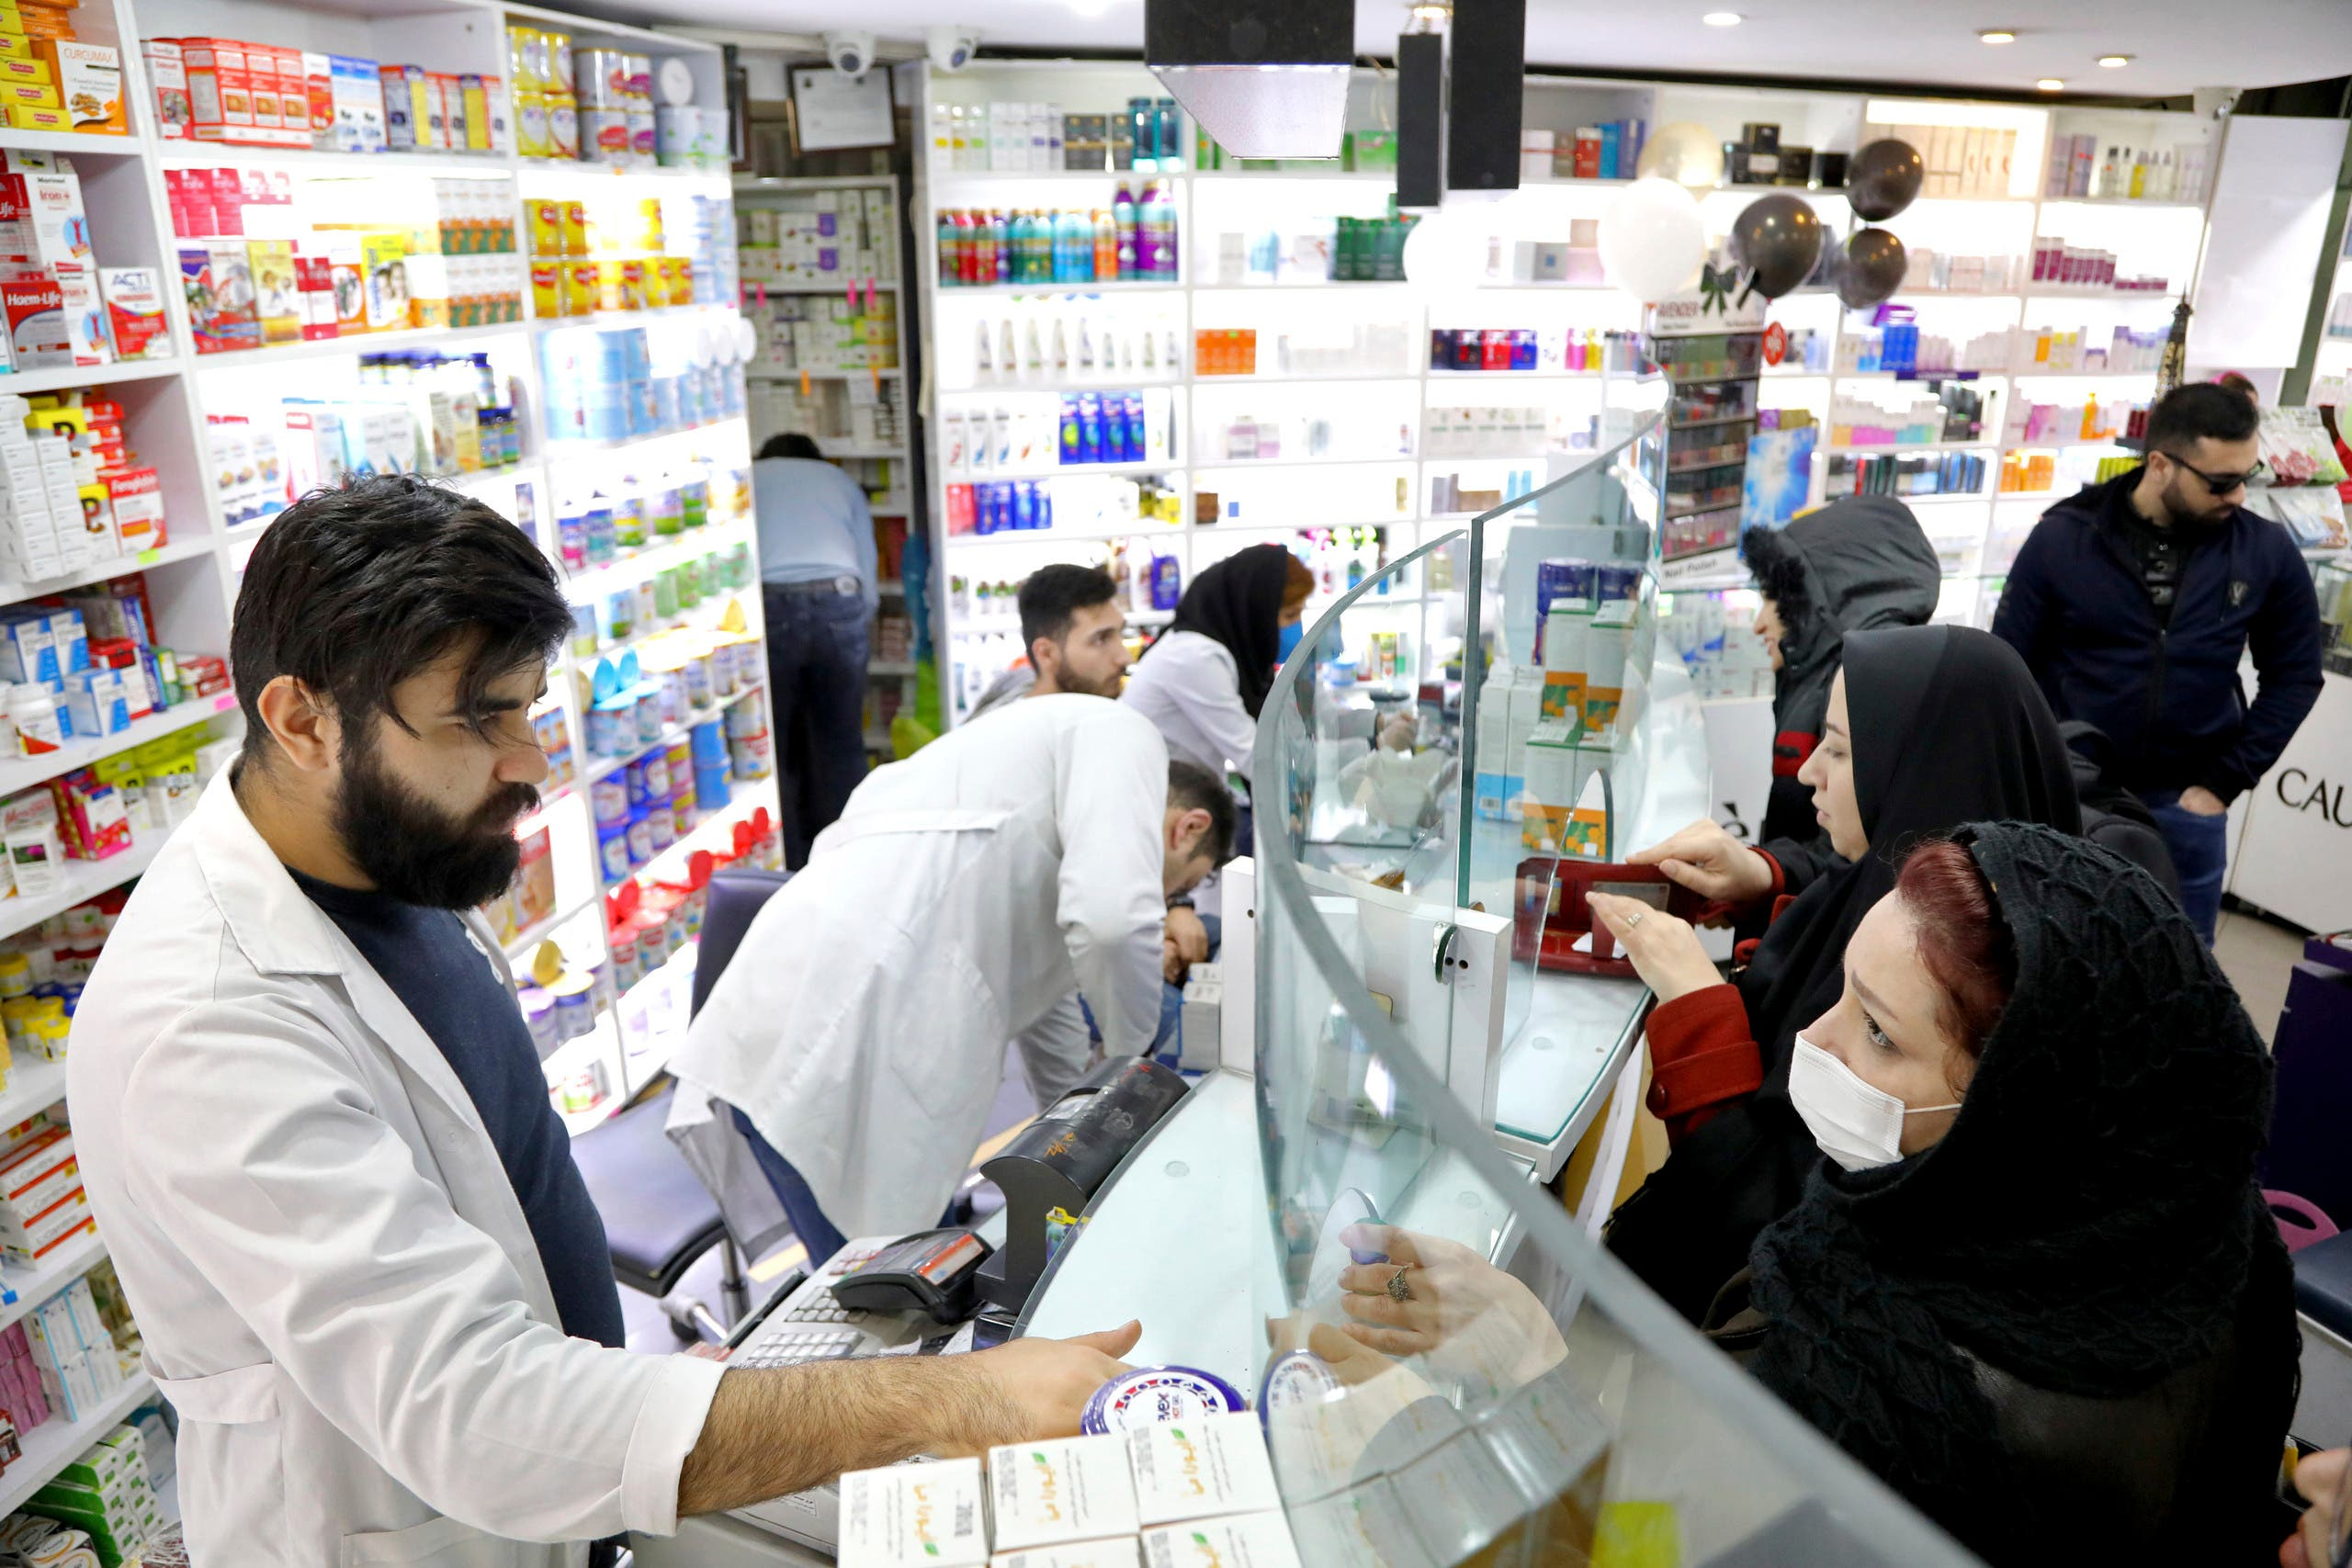 No coronavirus vaccine anytime soon for Iran